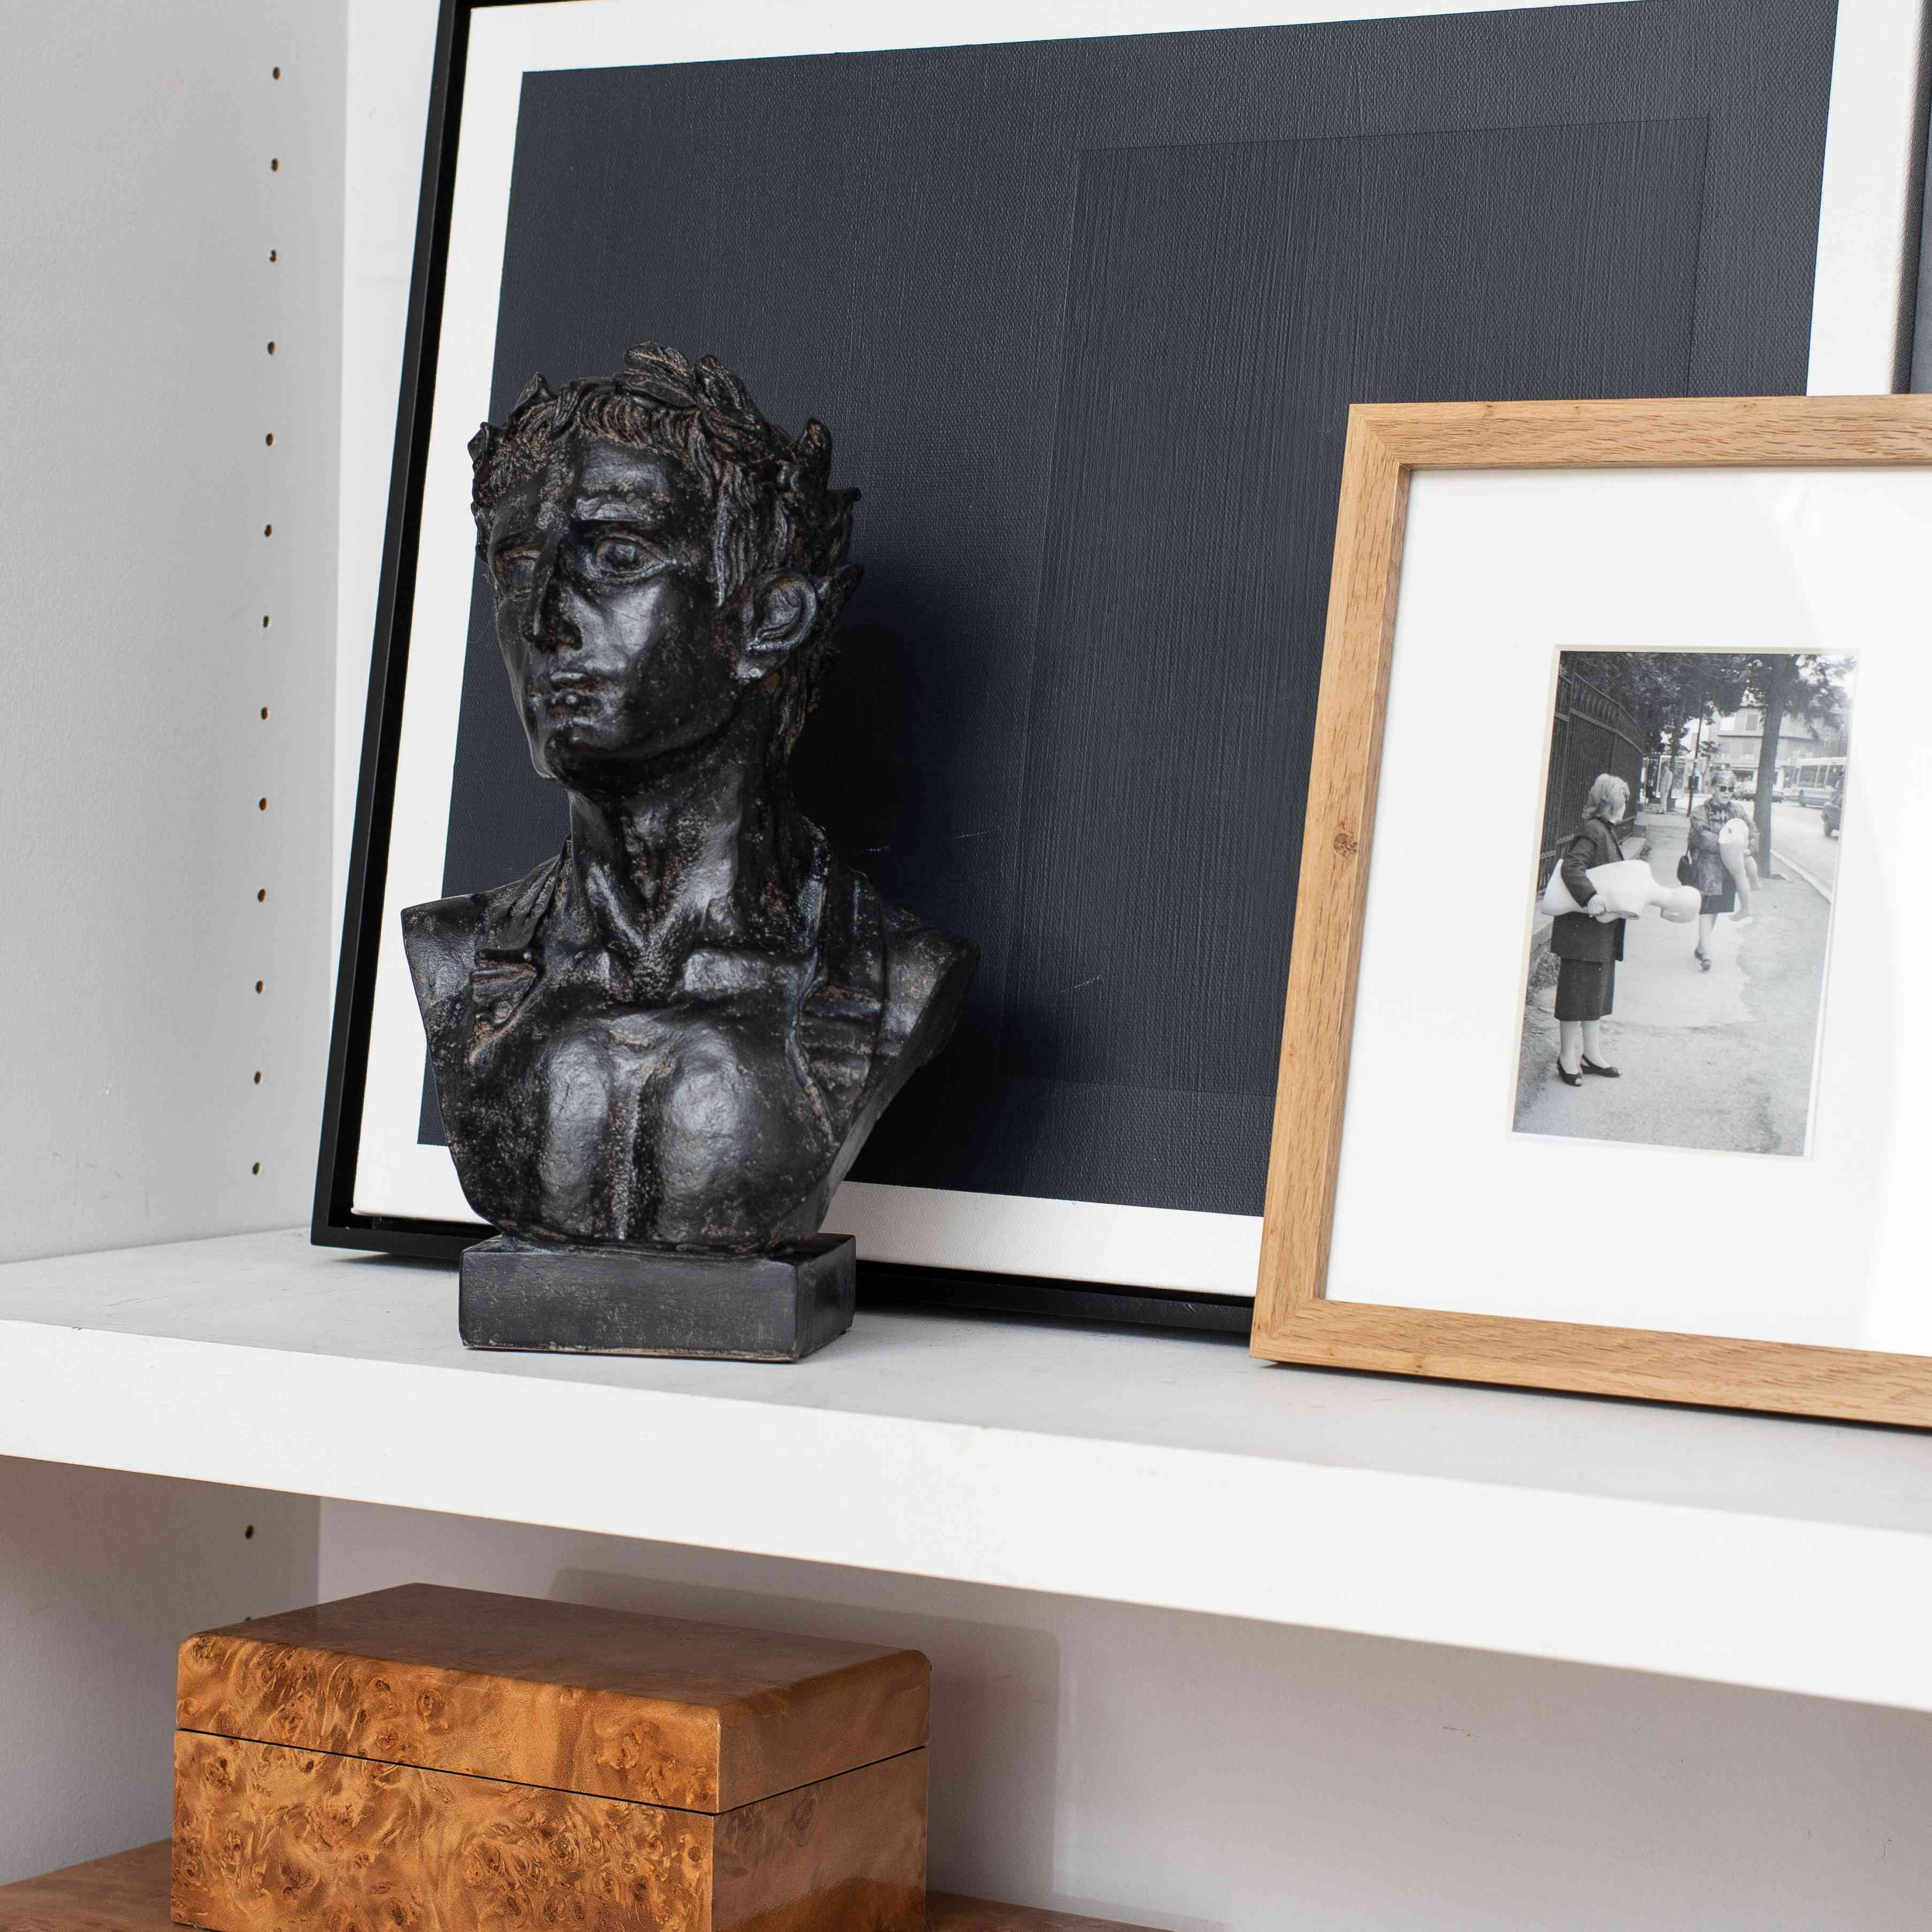 Shelf with bust and artwork.